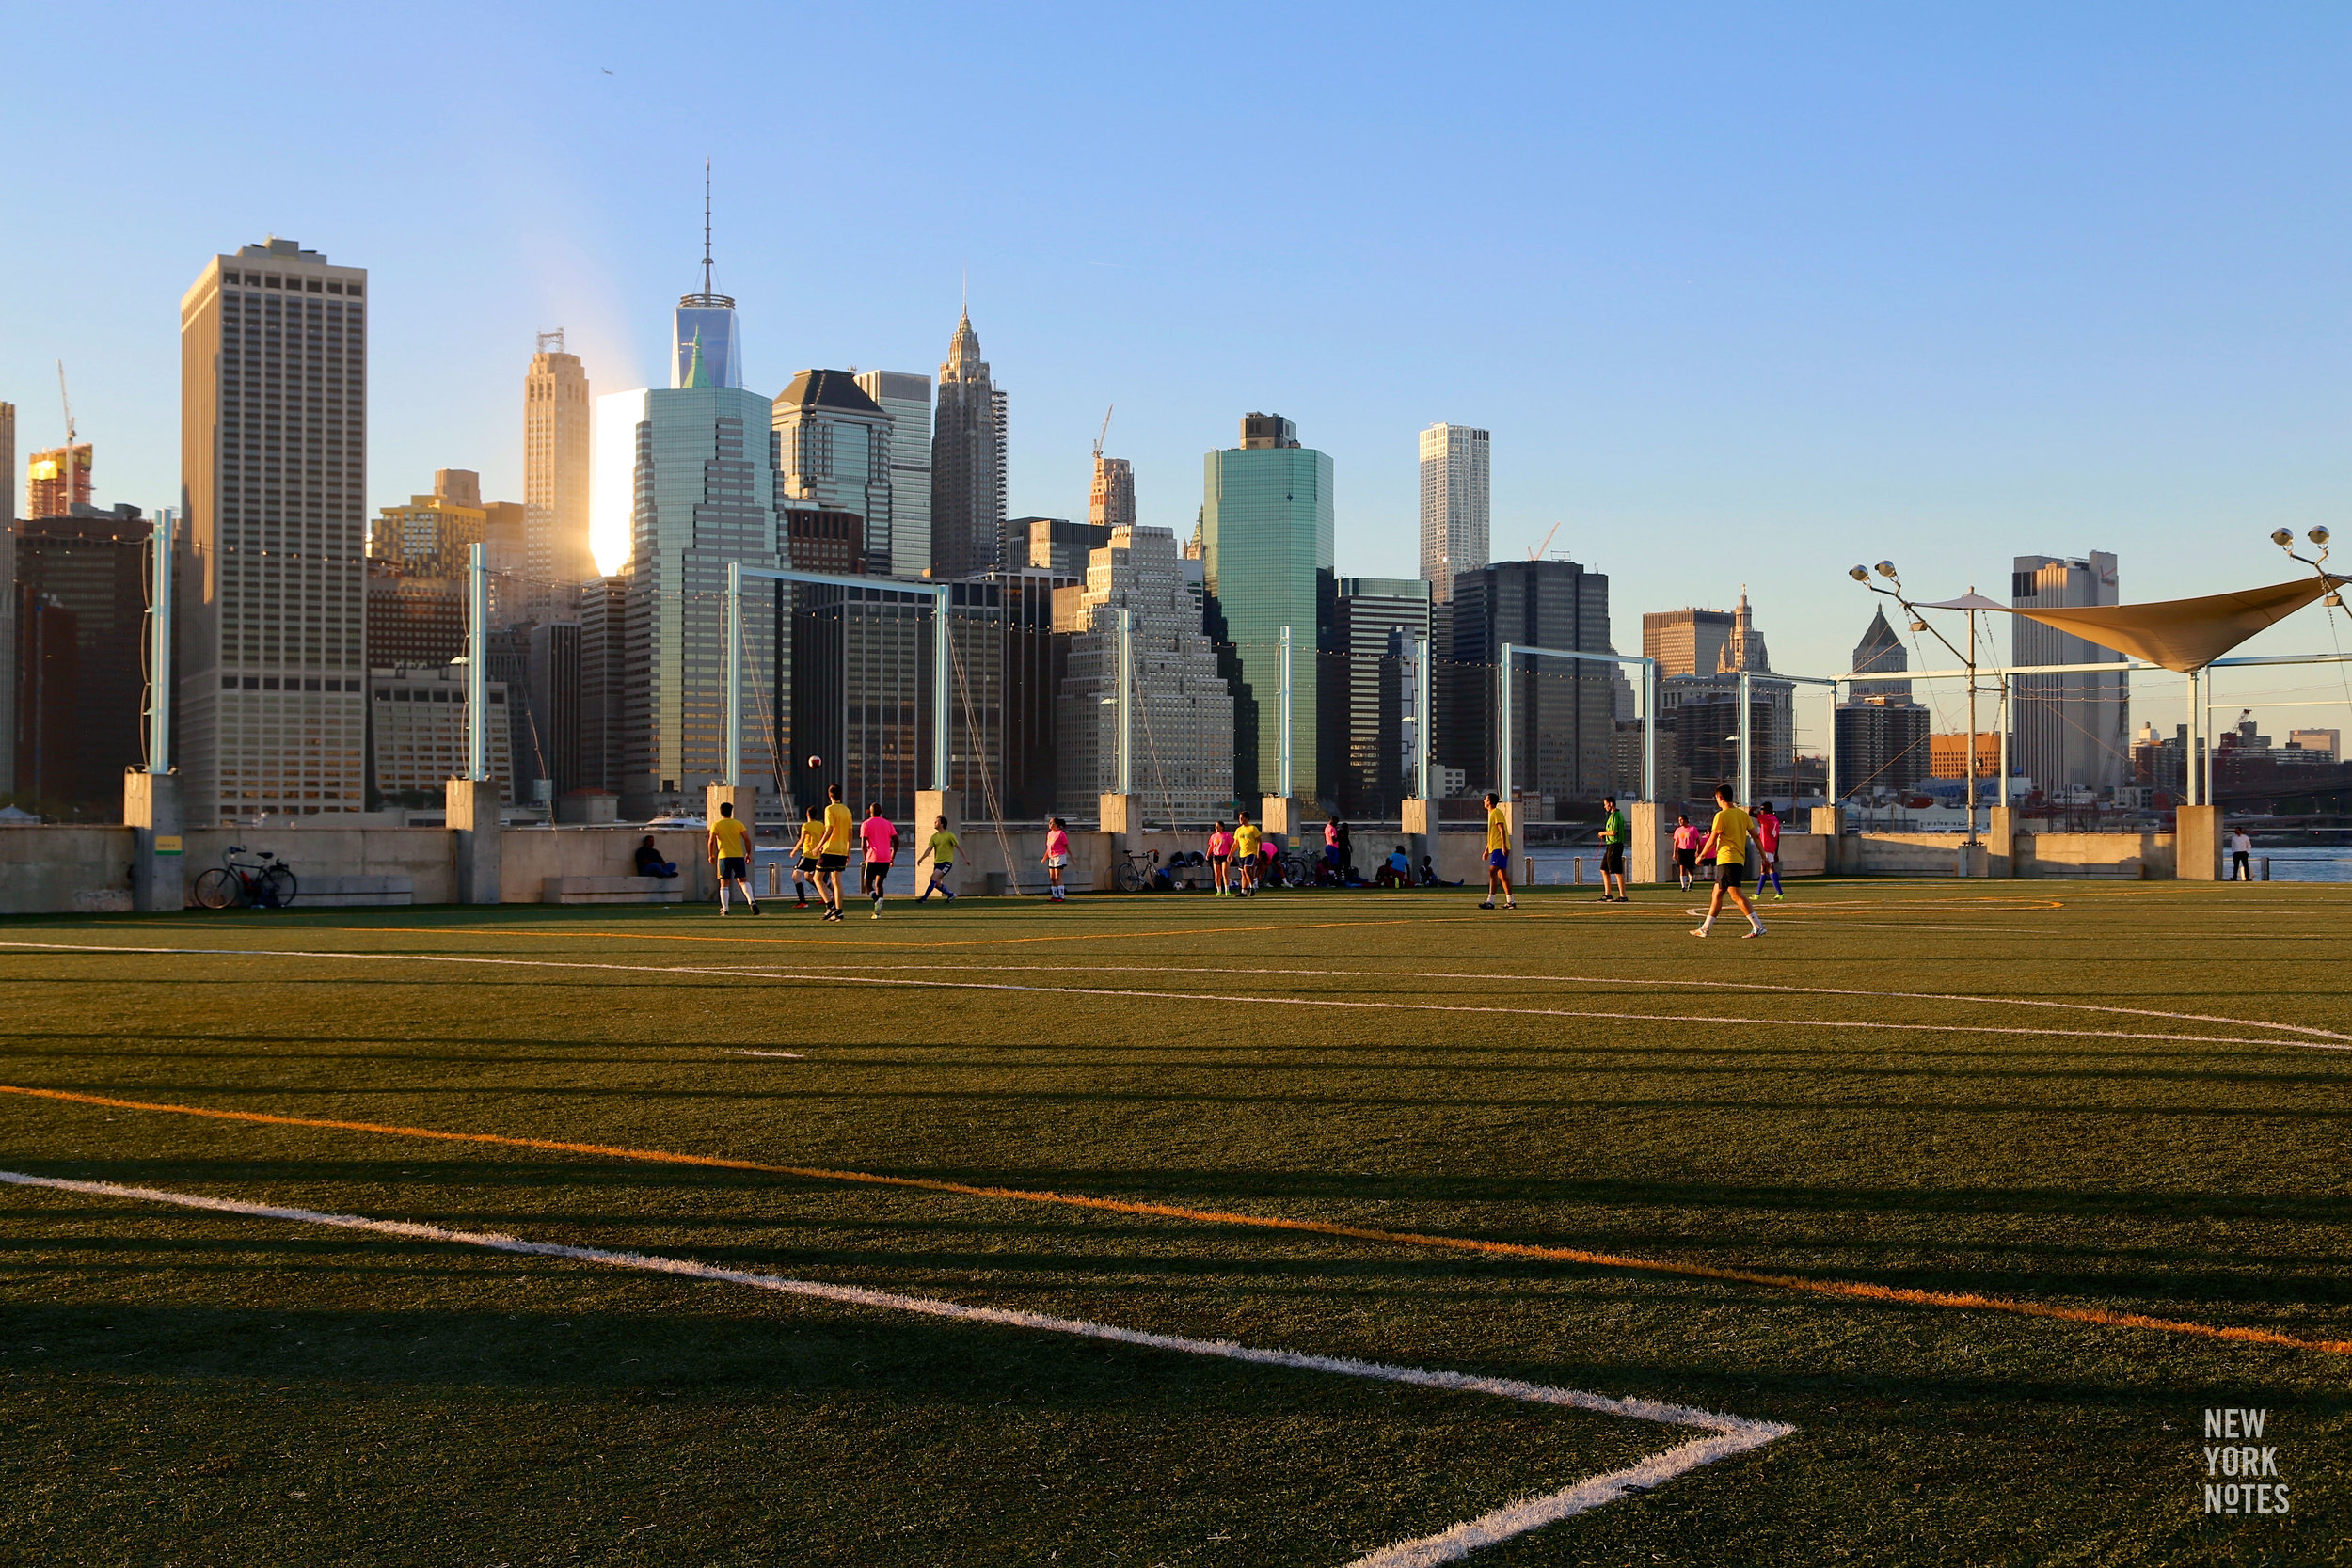 new_york_notes_guide_brooklyn_bridge_park_soccer_01.jpg